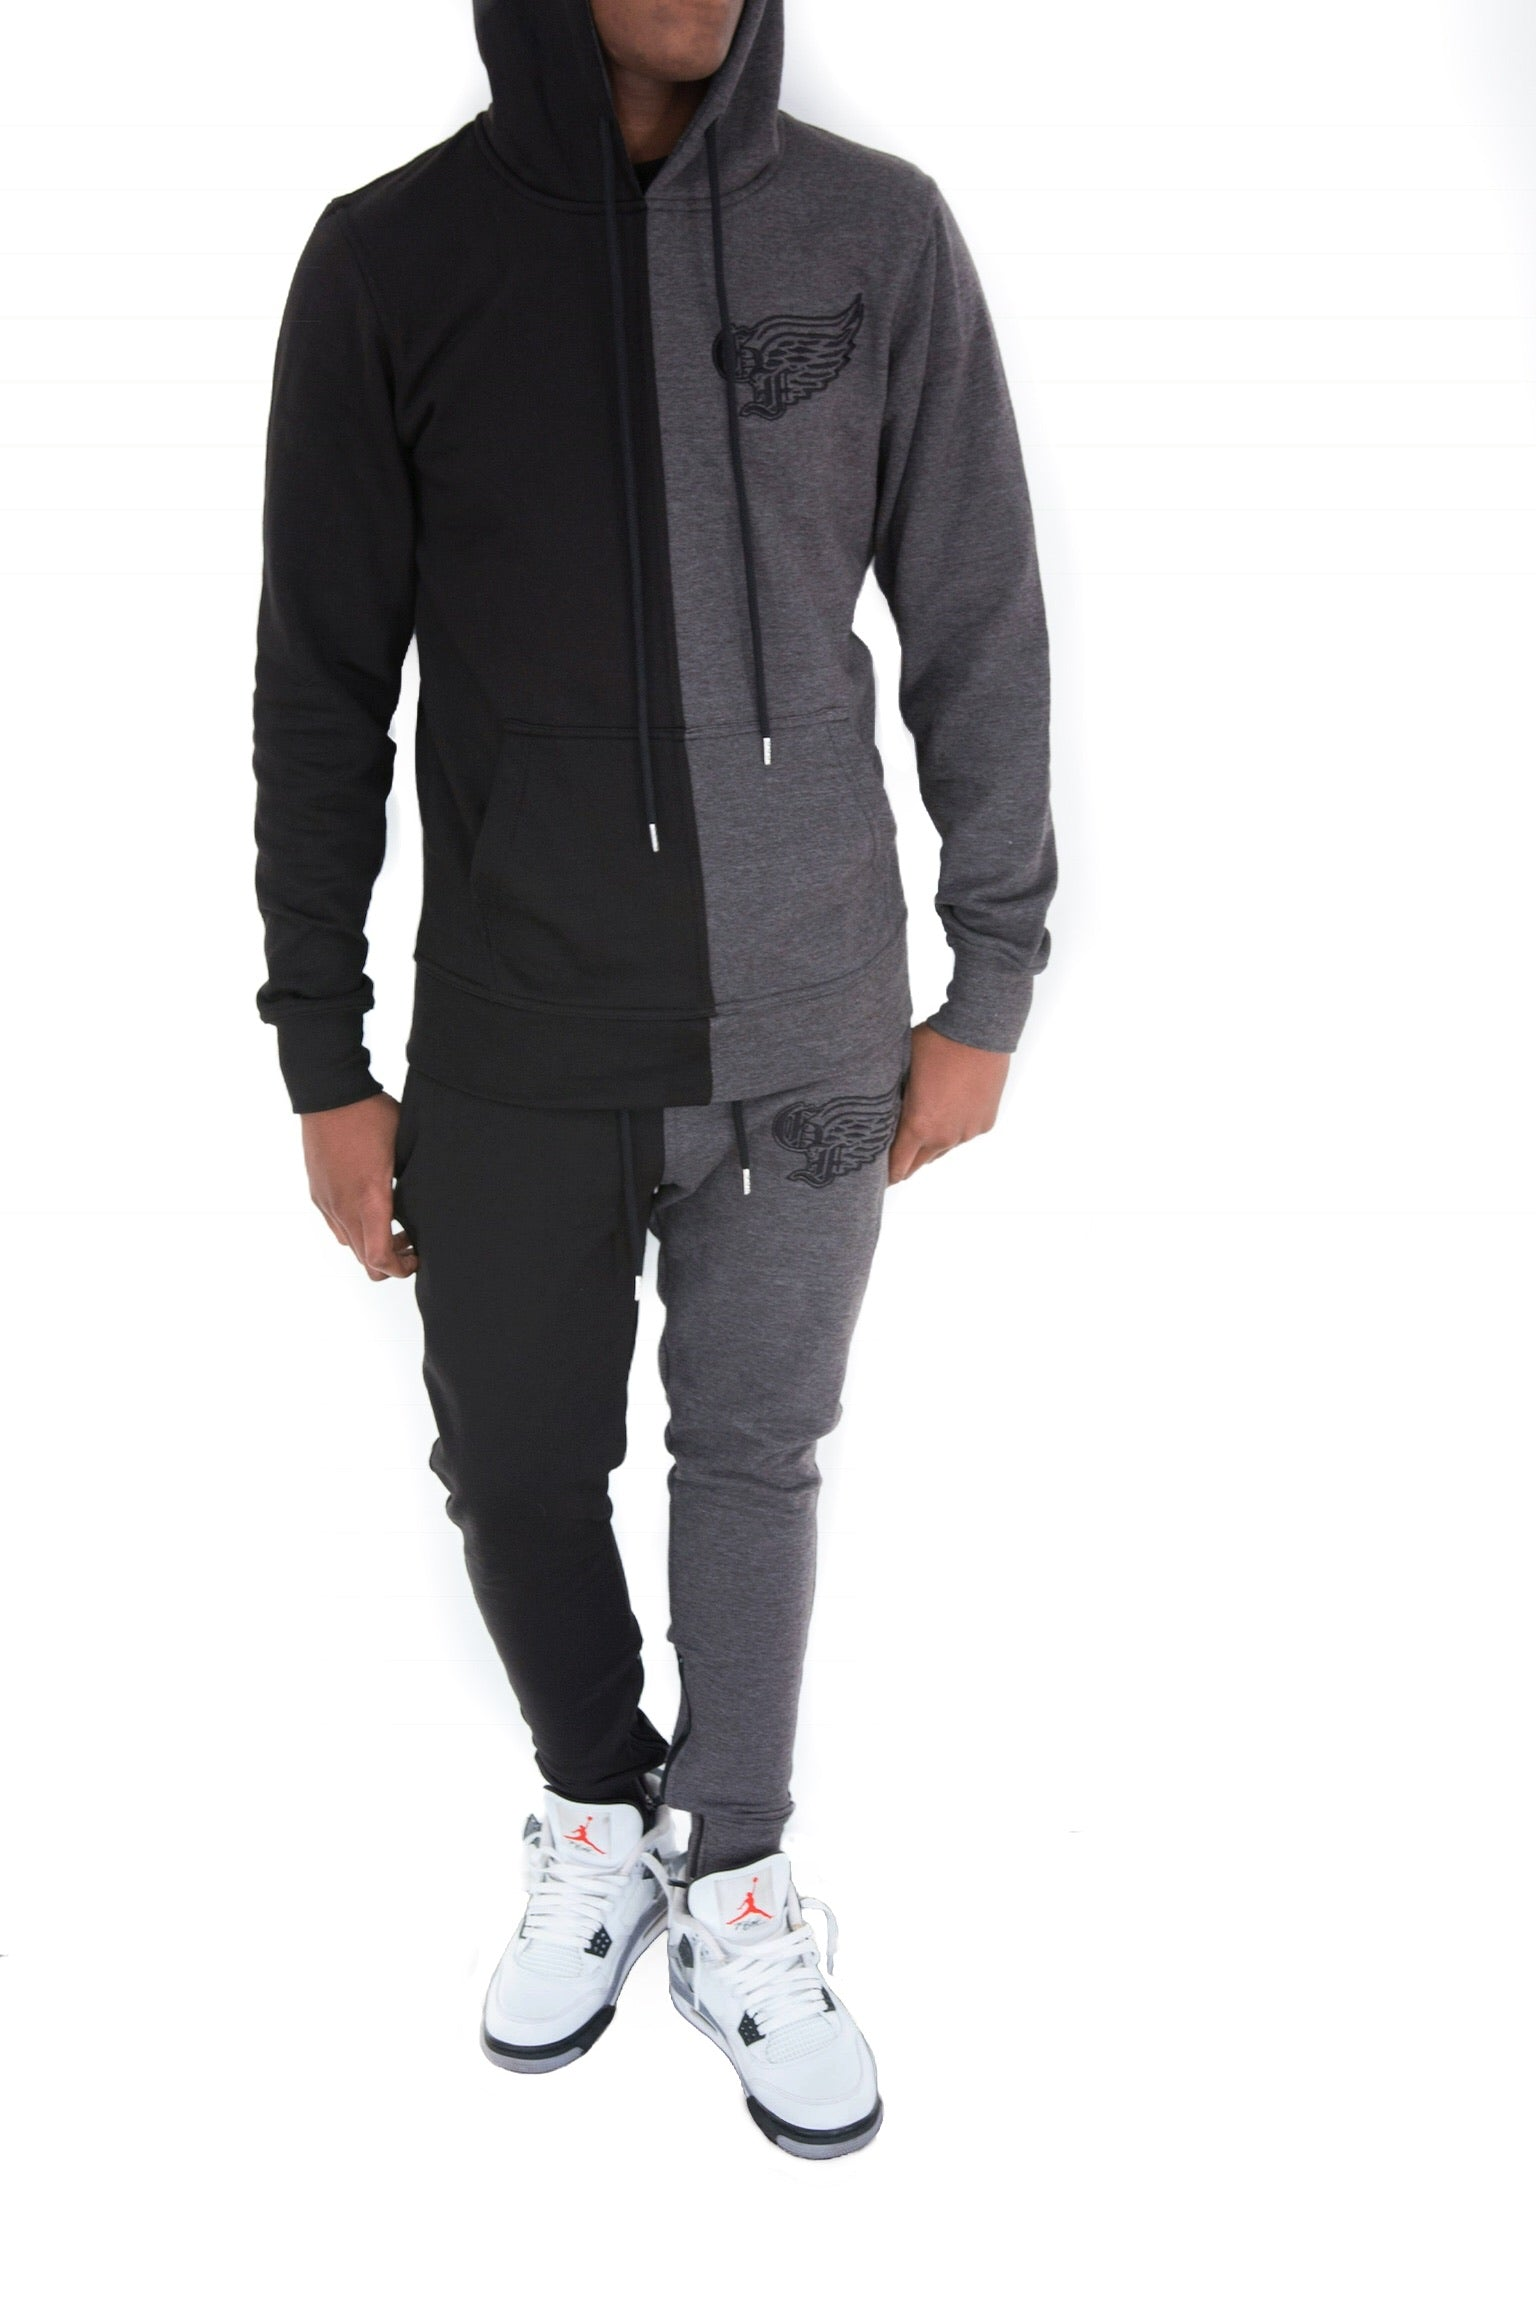 God First Two Tone Signature Sweatsuit - Black/Grey